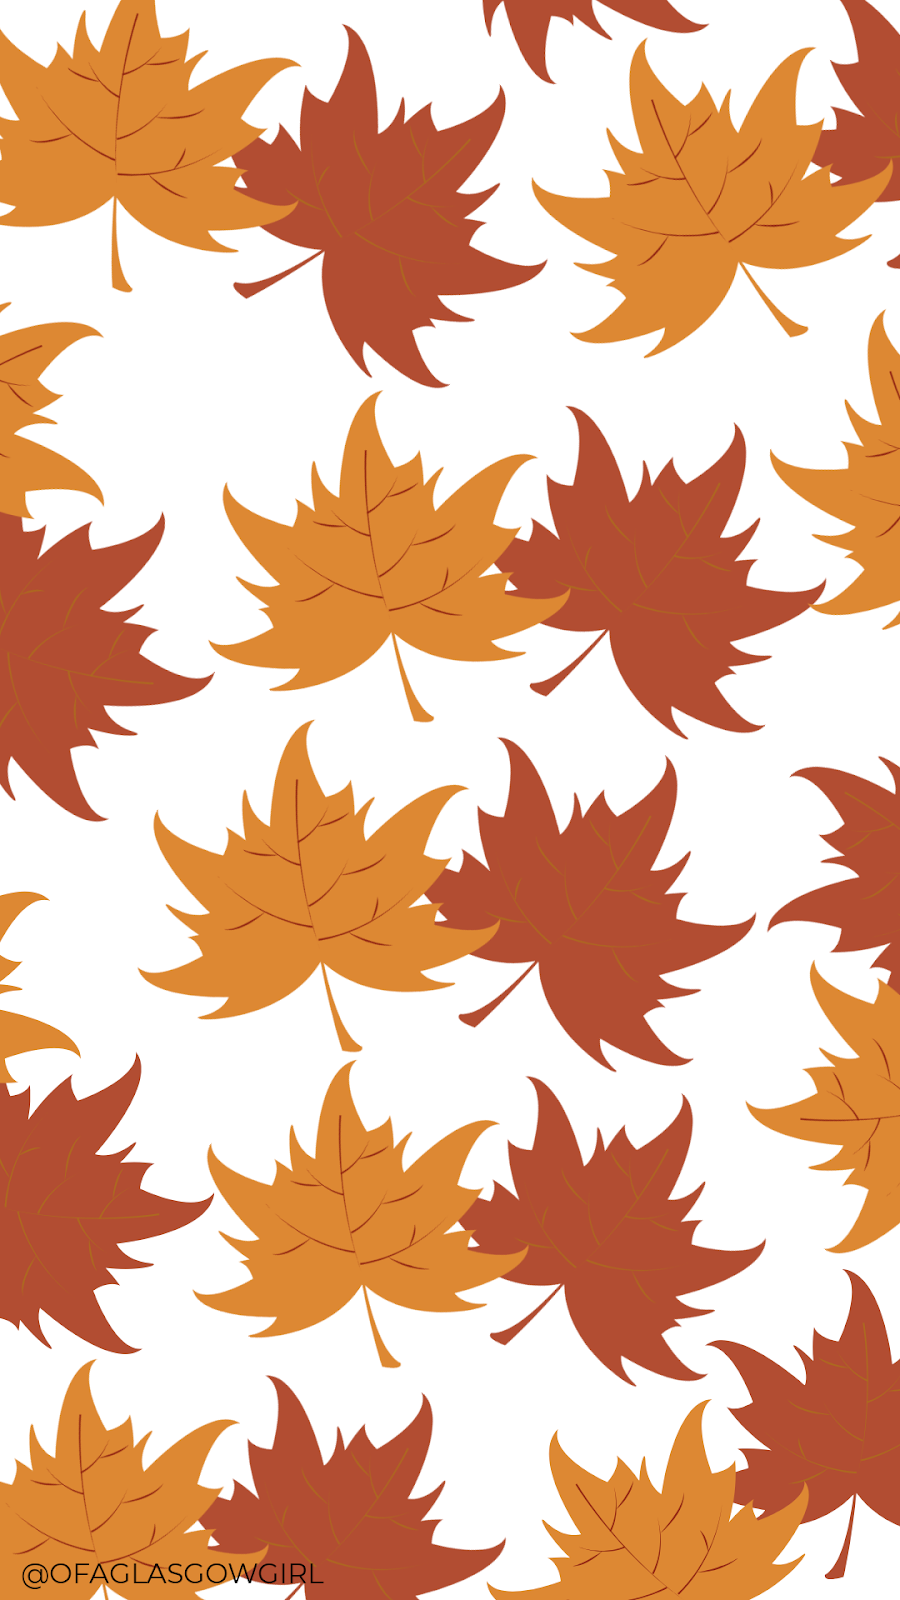 Autumn phone wallpaper or instagram template with a repeated pattern of leaves on it.